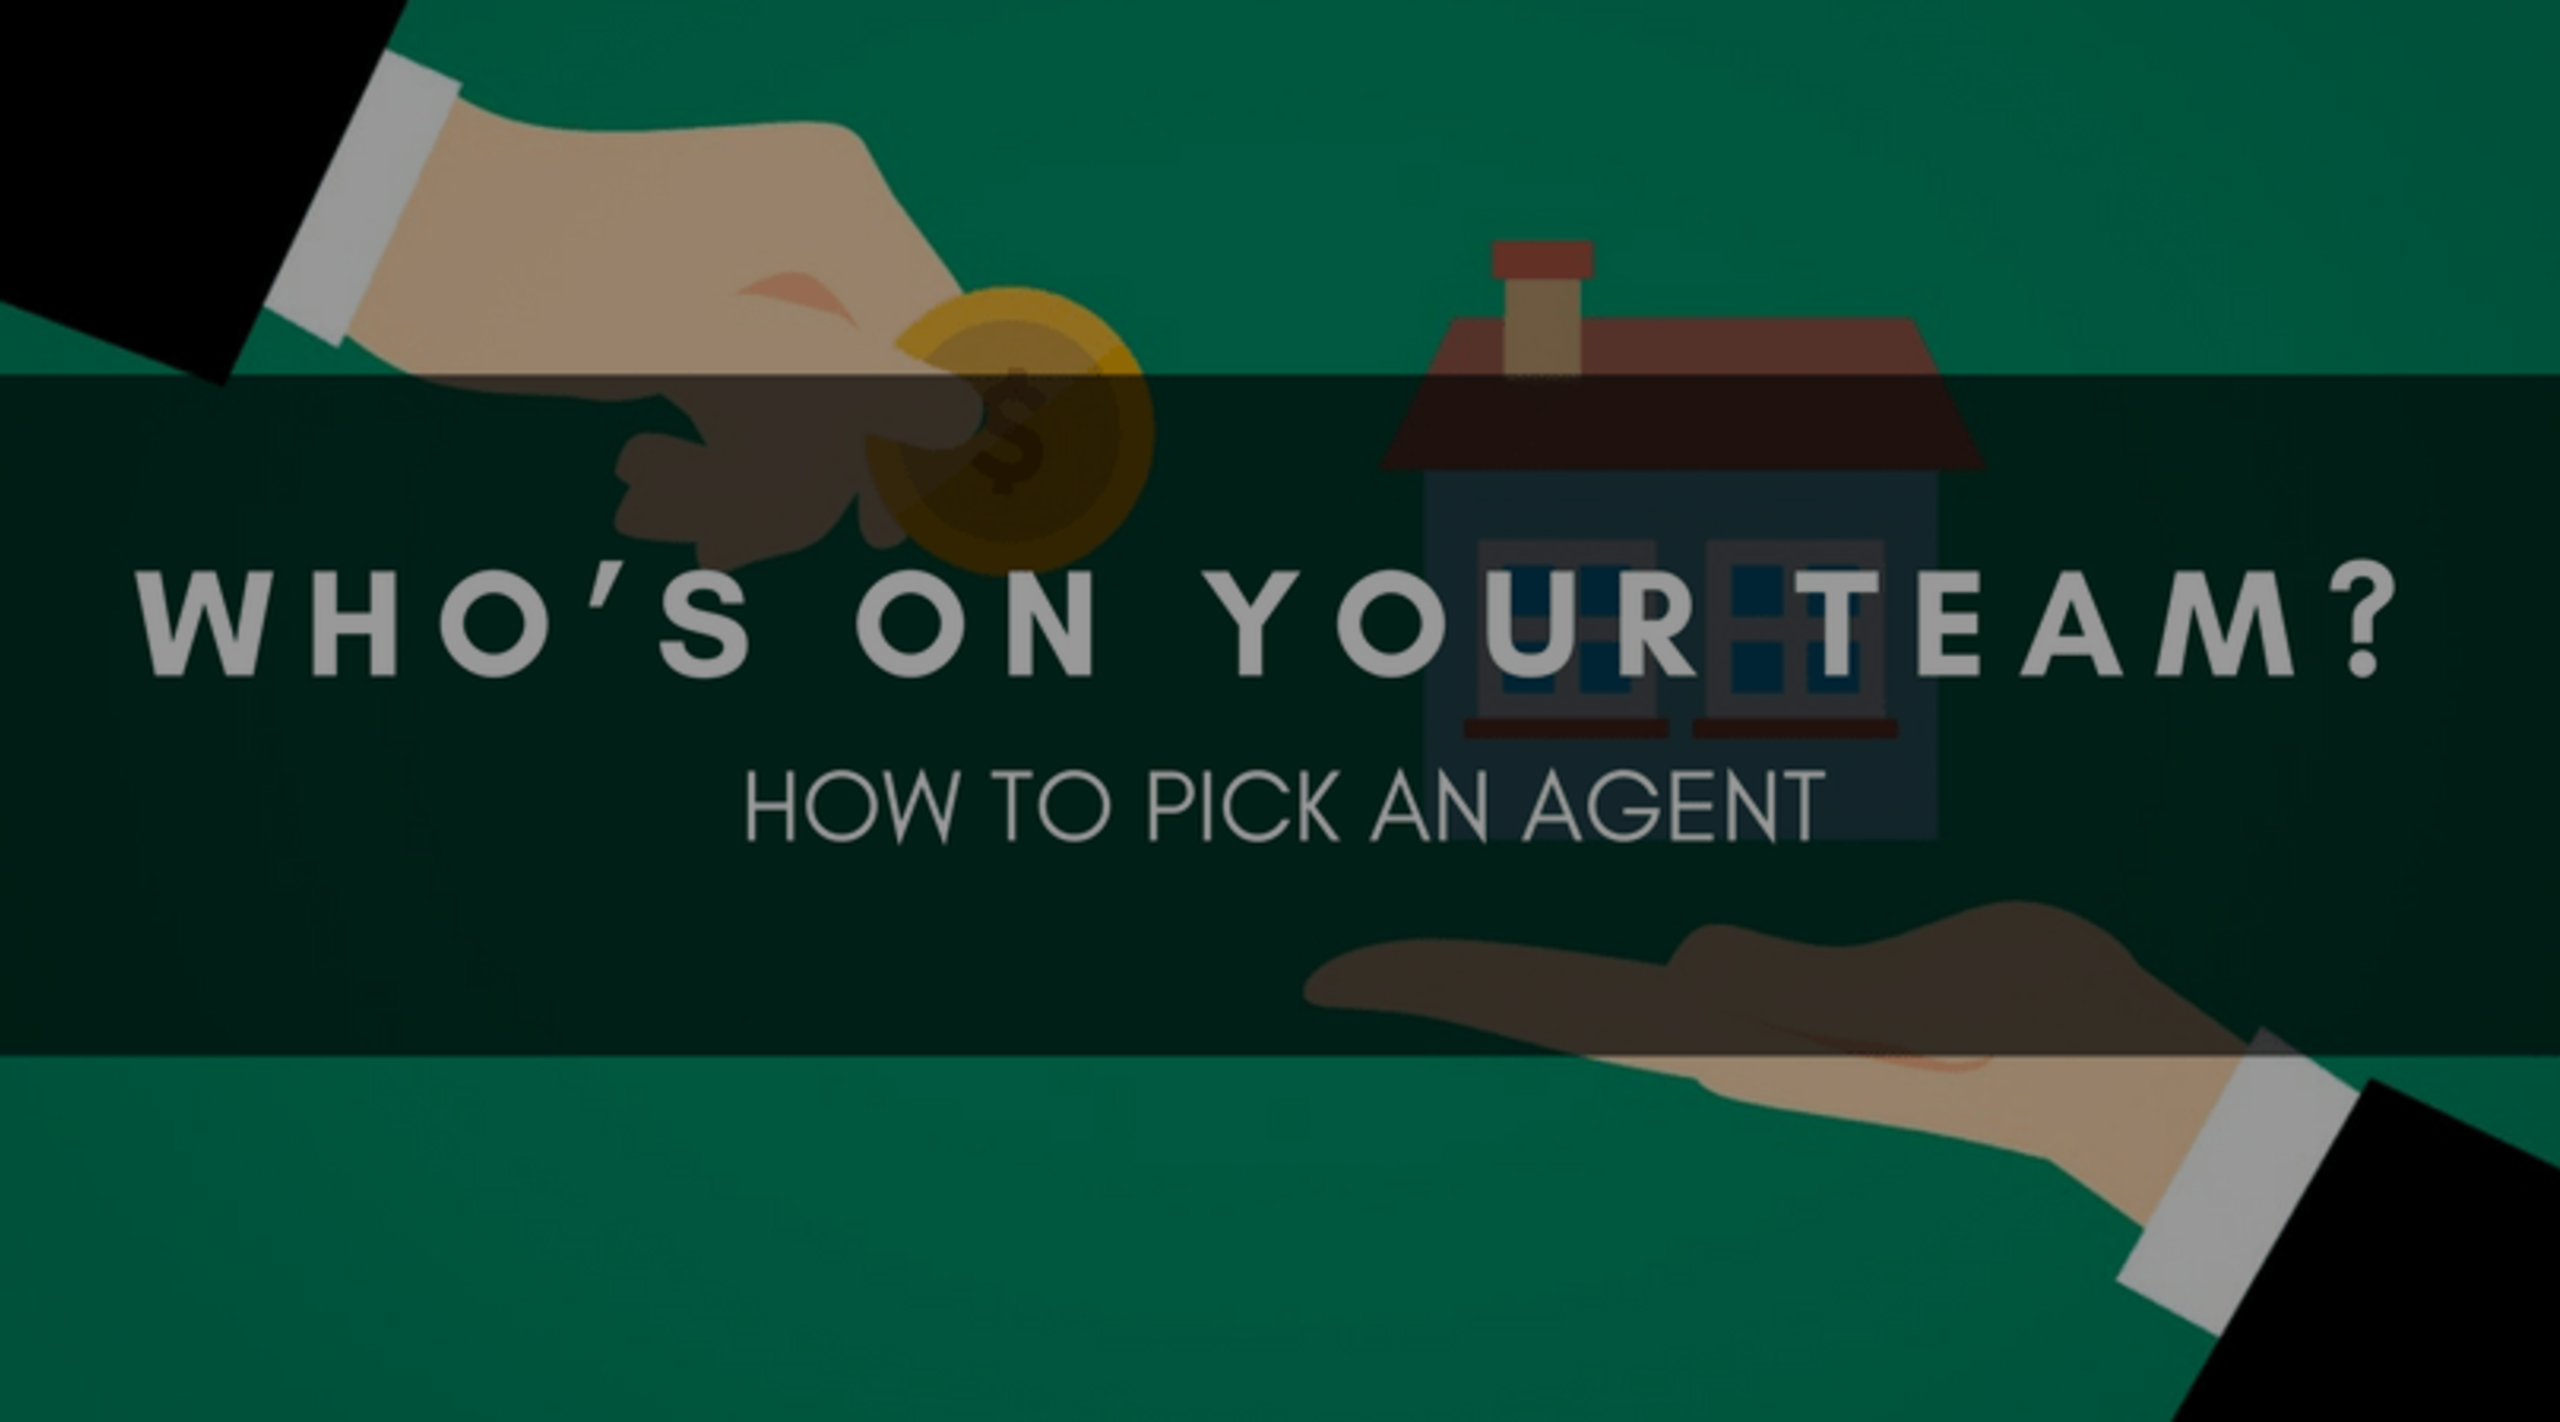 WHO'S ON YOUR TEAM? | HOW TO PICK AN AGENT